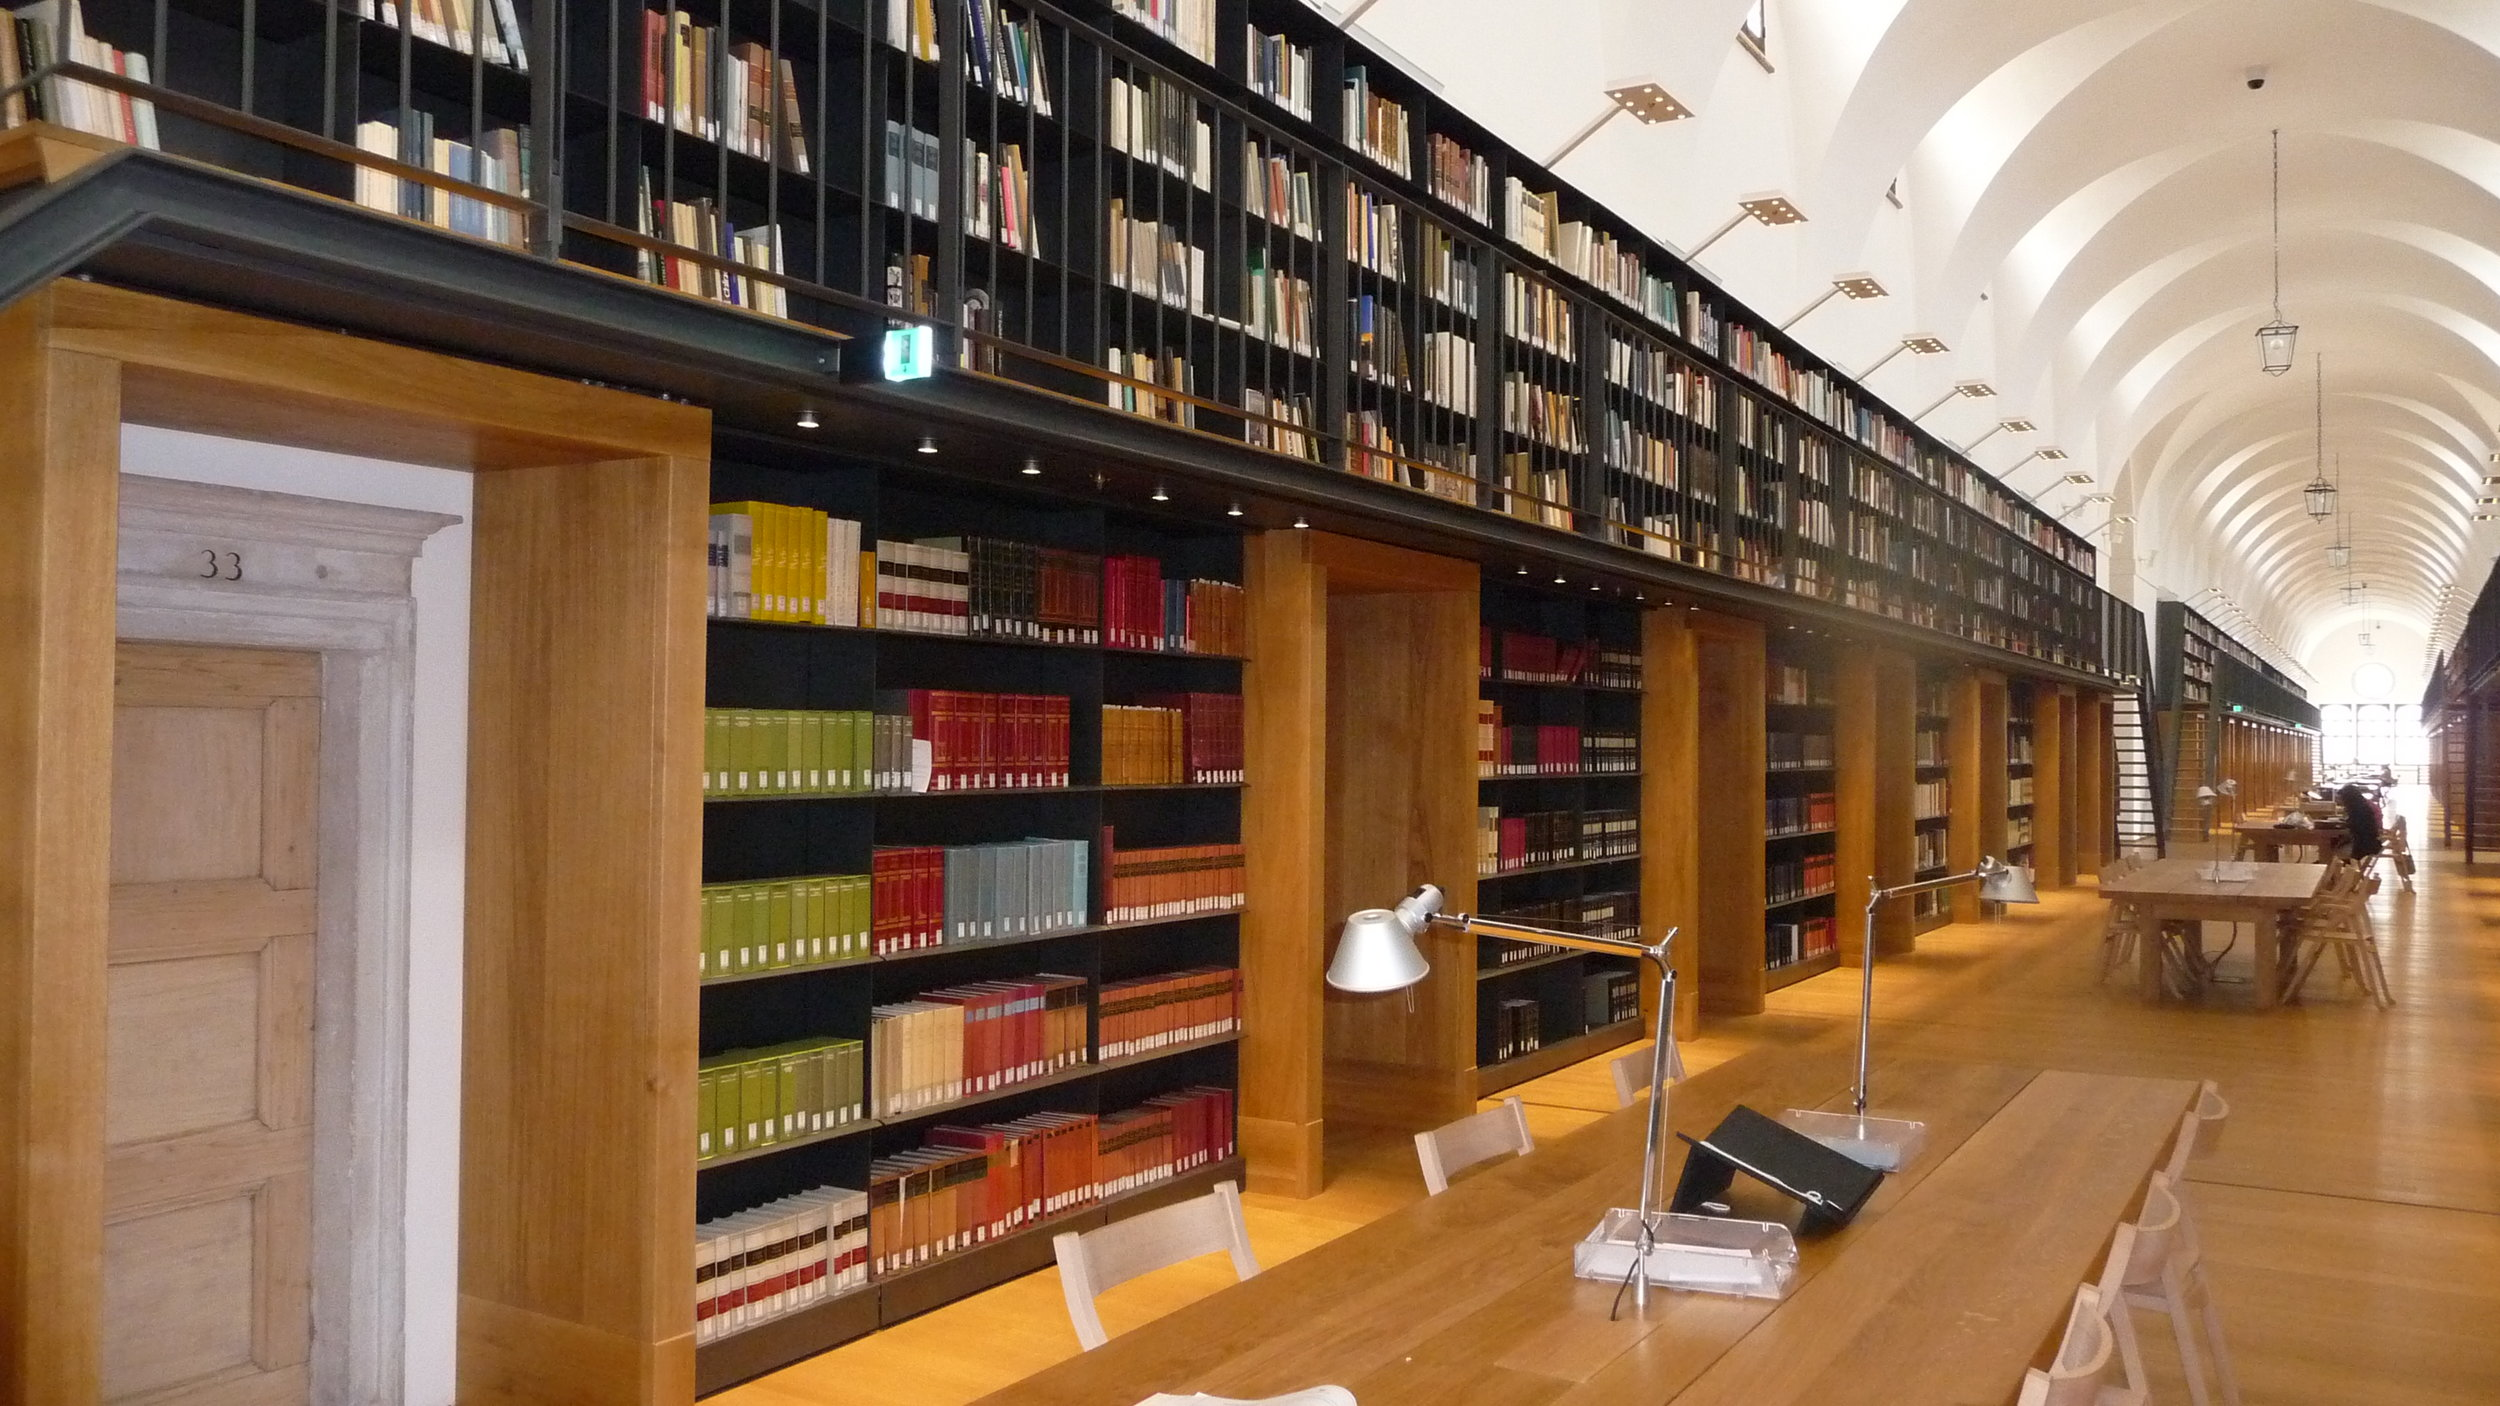 Biblioteca di Fondazione Giorgio Cini, the new section in the Manica Lunga of the Monastery